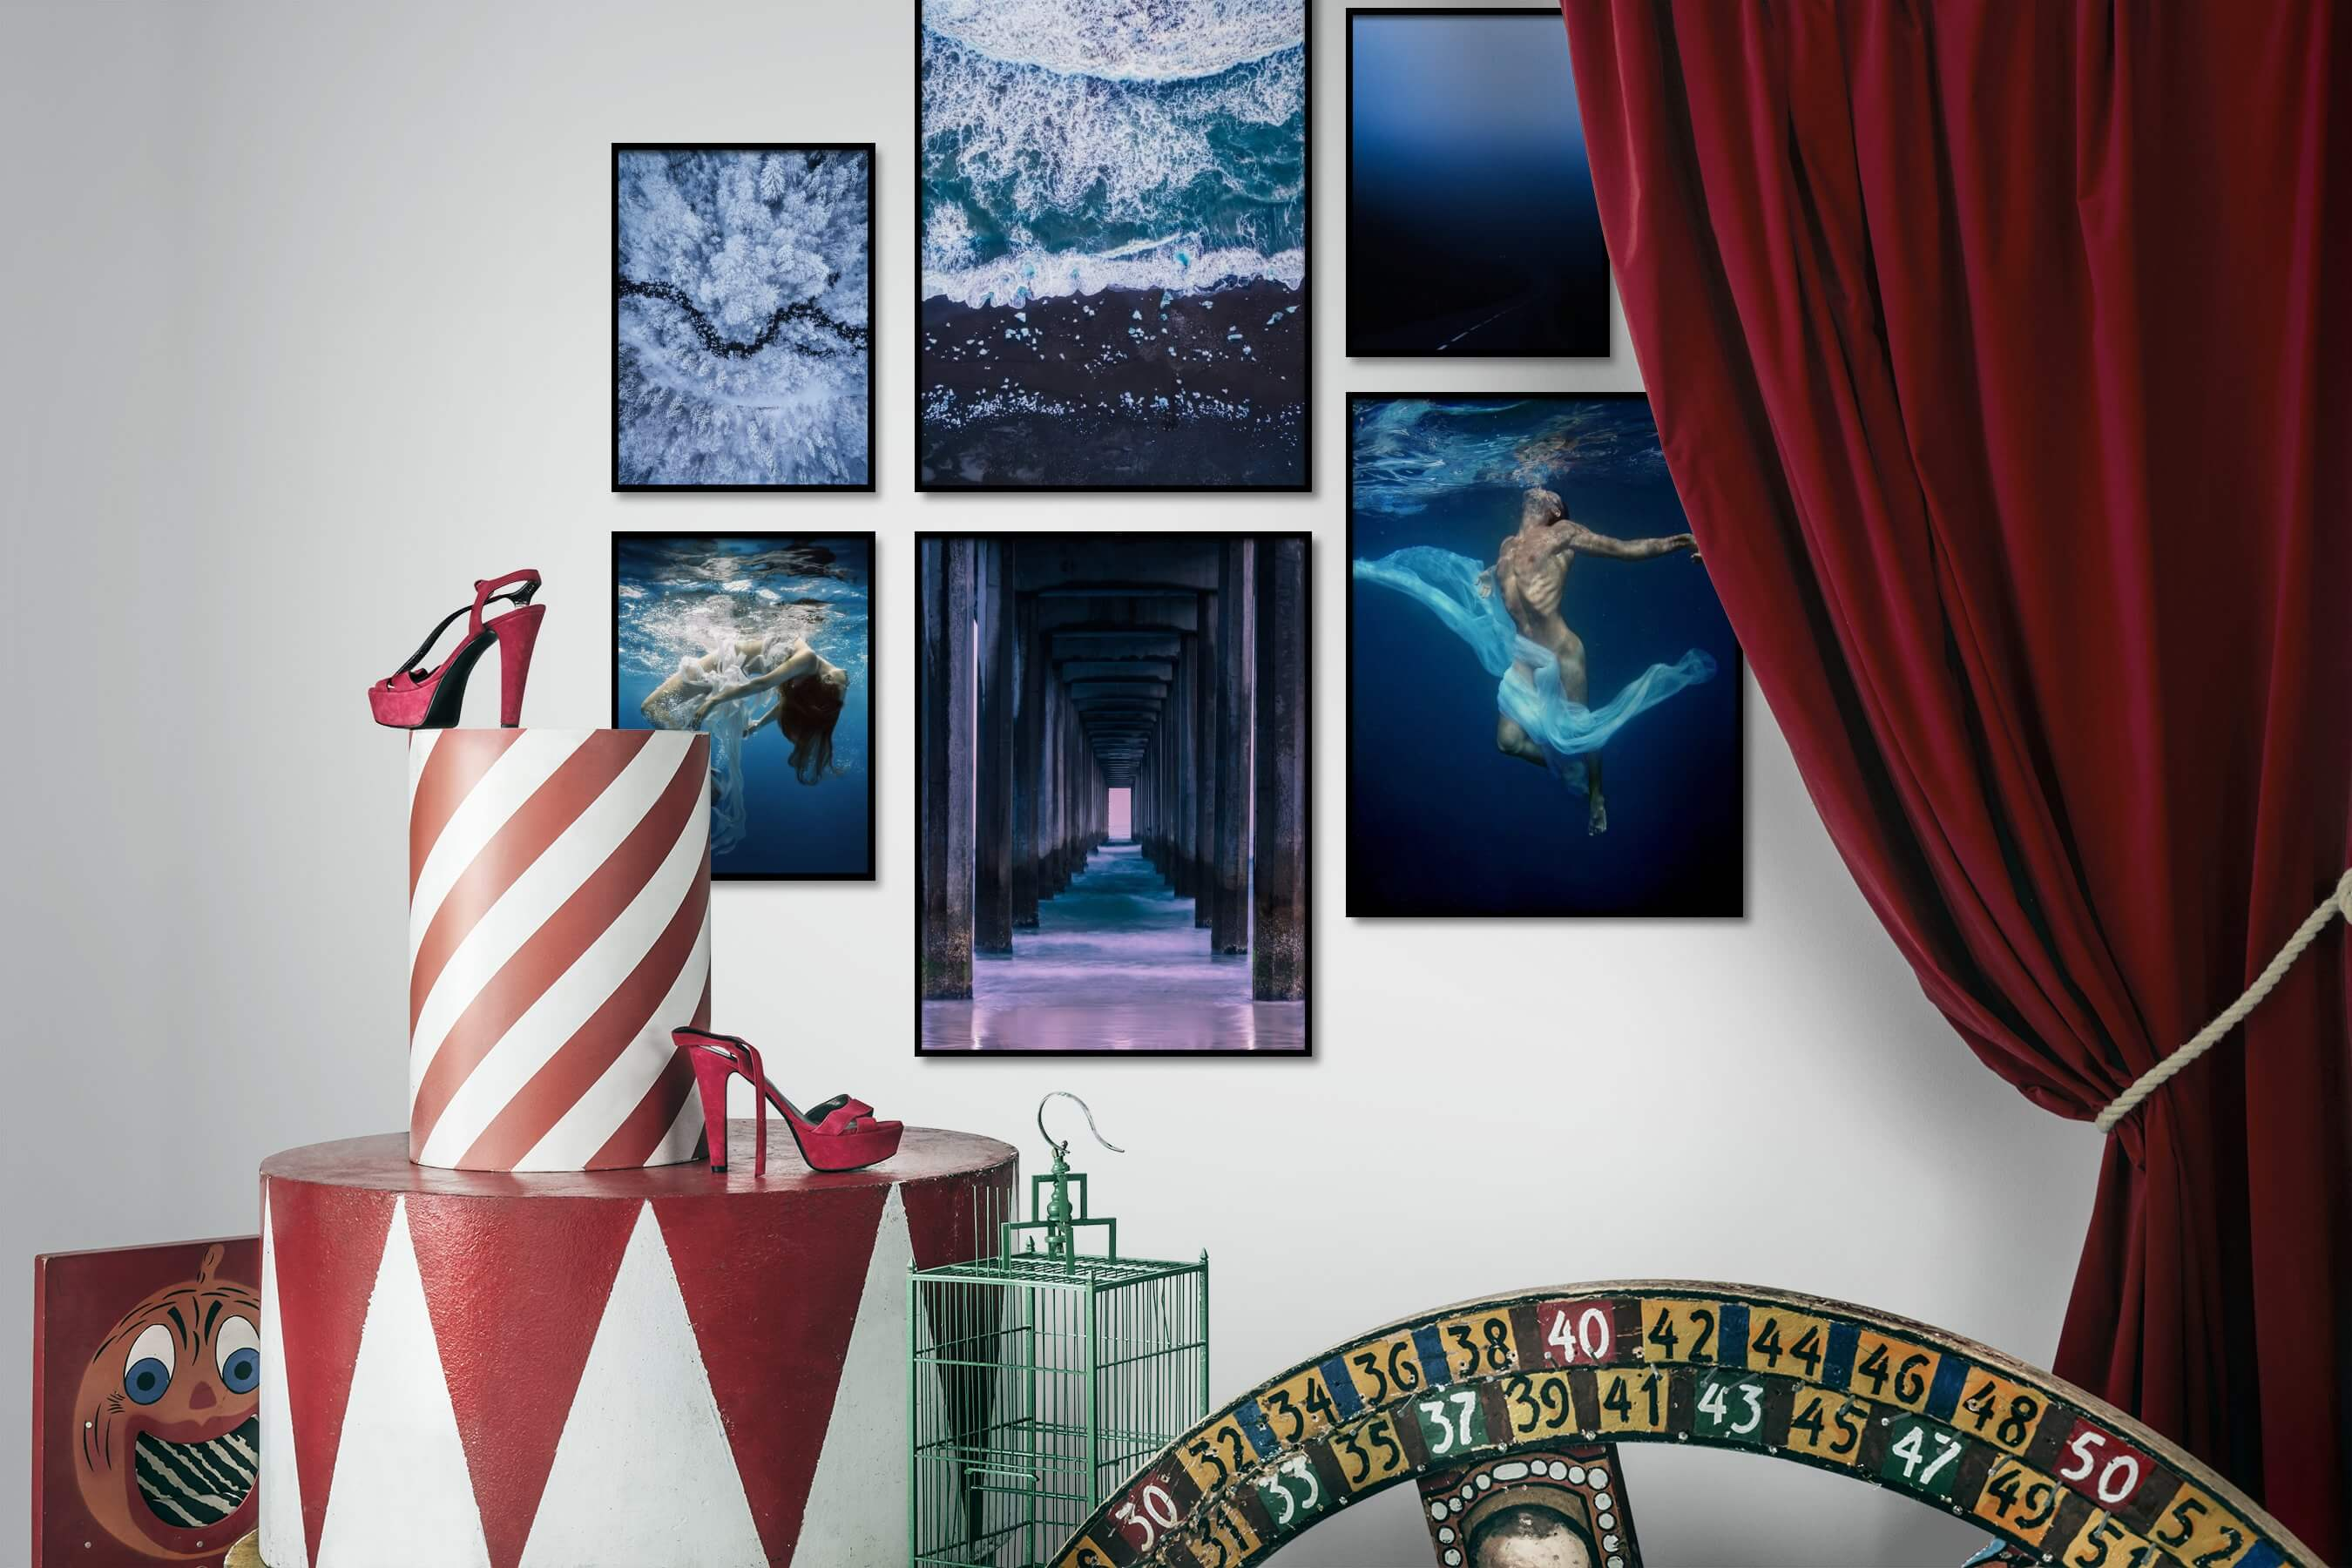 Gallery wall idea with six framed pictures arranged on a wall depicting For the Moderate, Nature, Beach & Water, Fashion & Beauty, For the Minimalist, and Country Life